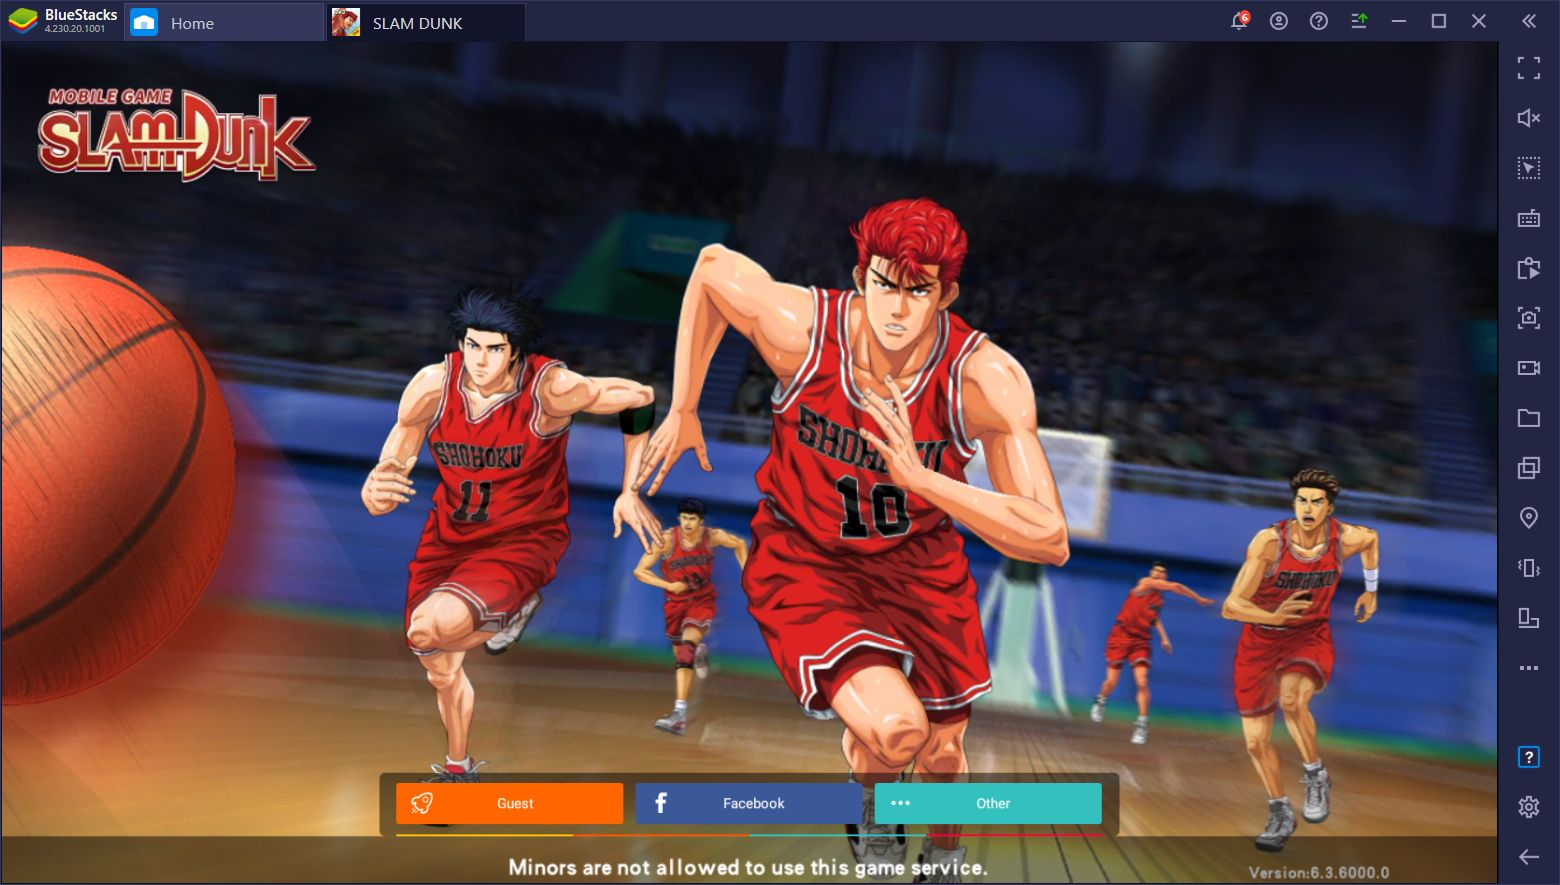 The Slam Dunk Mobile Basketball Game Just Released And You can Play It on PC With BlueStacks